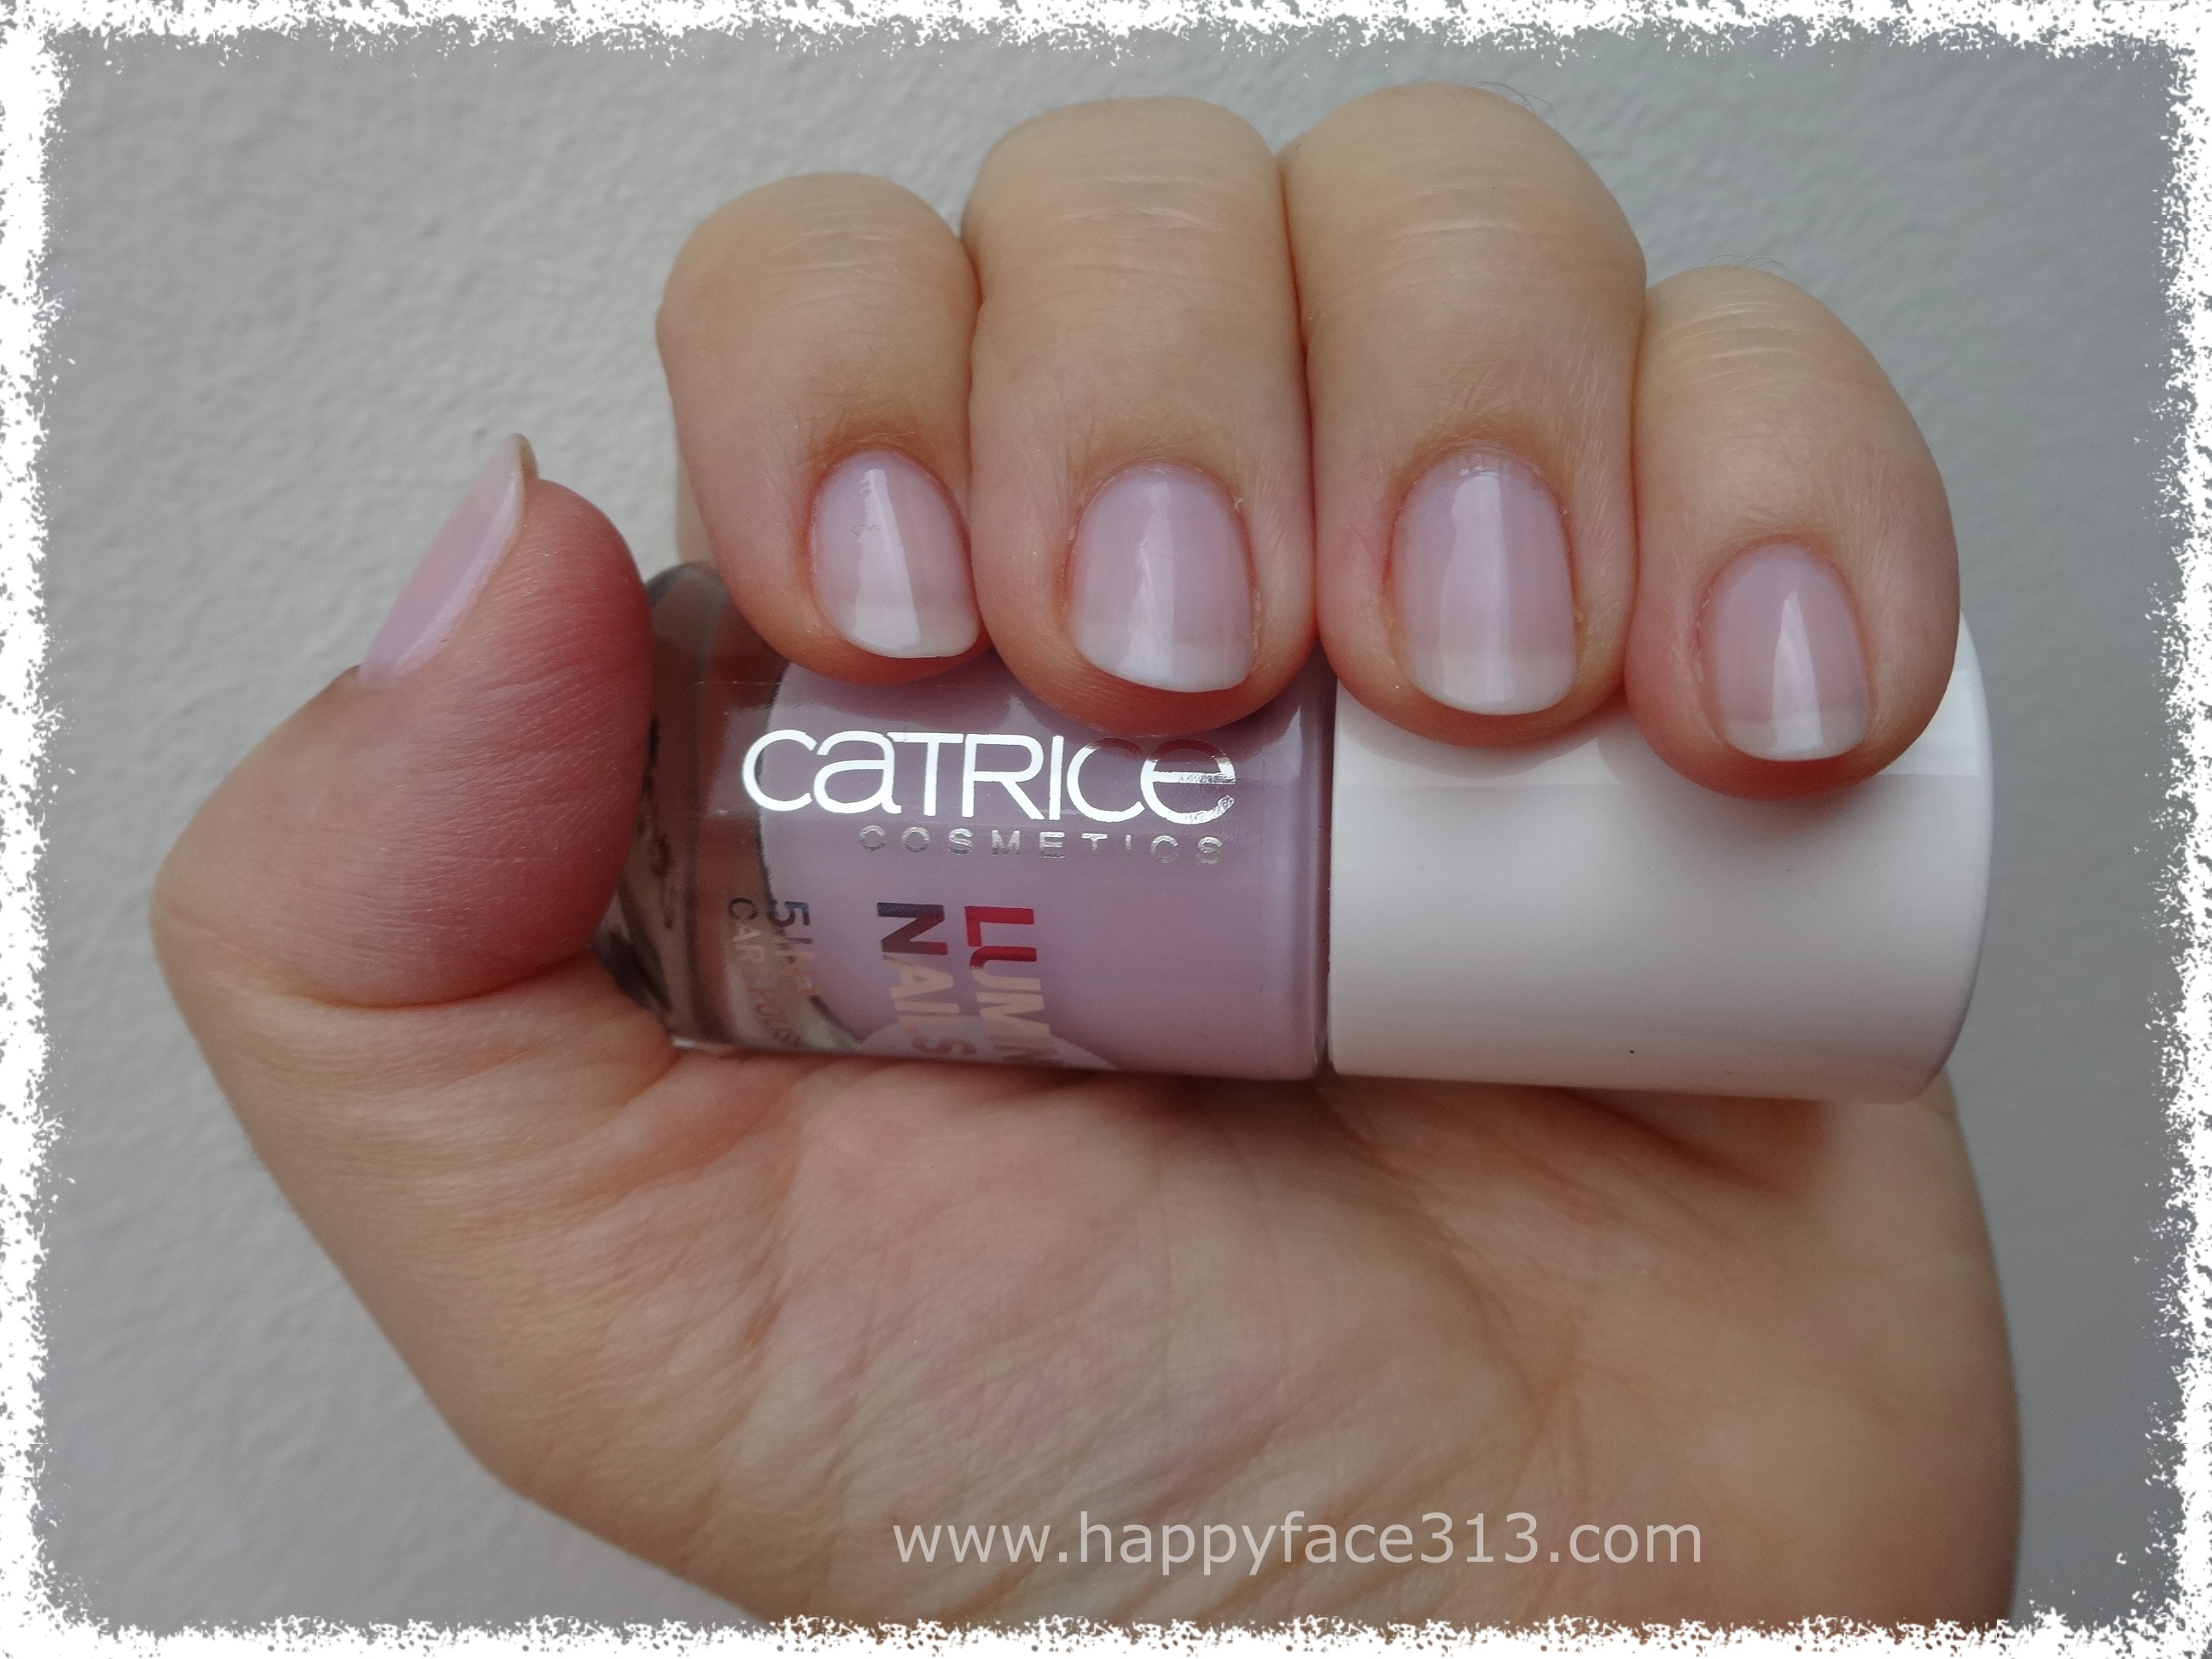 I am very HAPPY with Catrice Luminous Nails 40 Parfait Violet